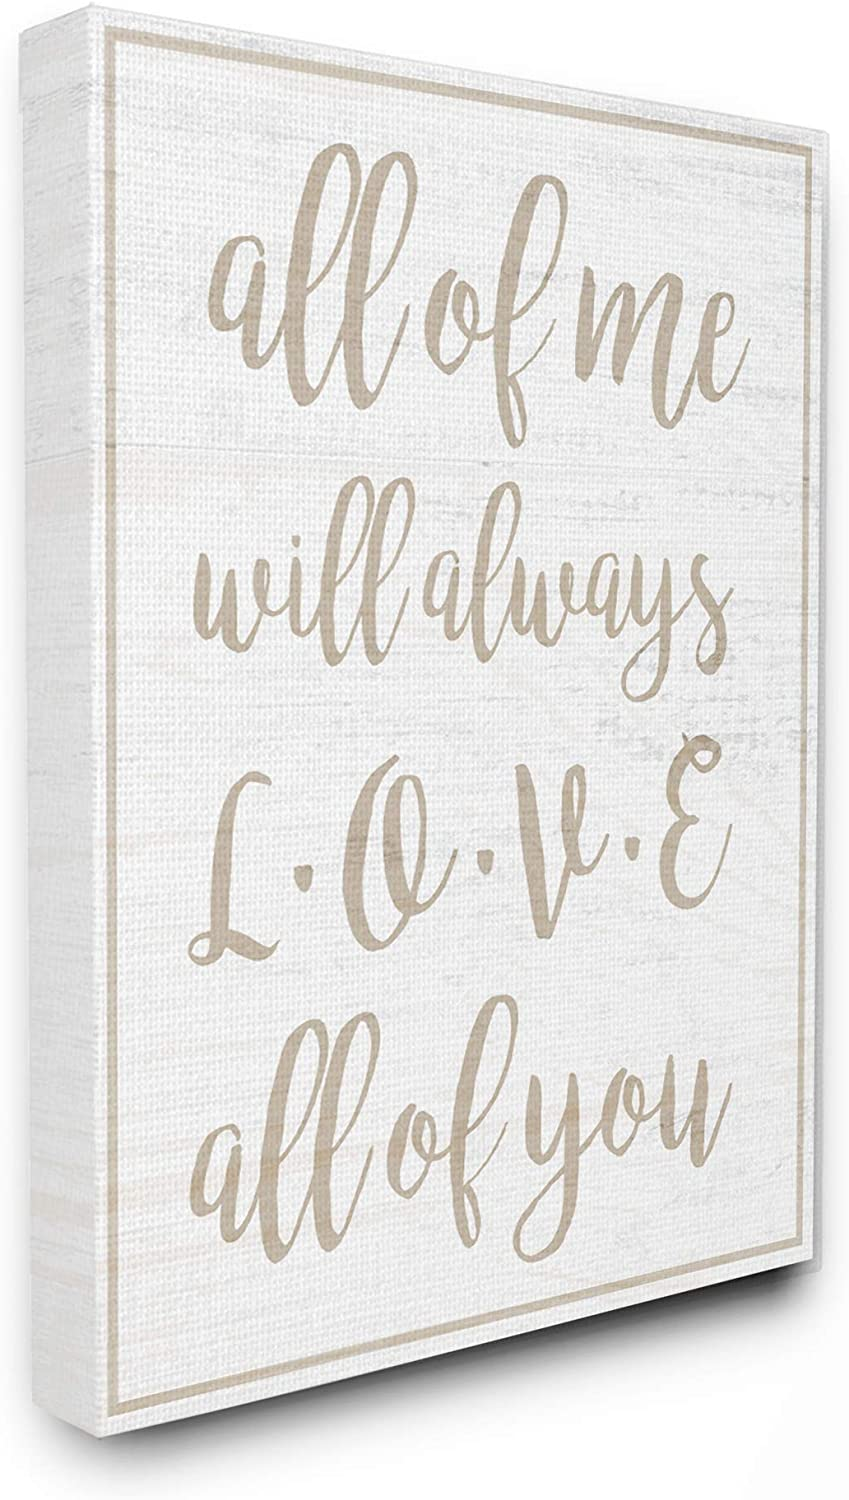 Stupell Industries I Will Always Love All of You White Wood Look Typography Canvas Wall Art, 24 x 30, Multi-Color